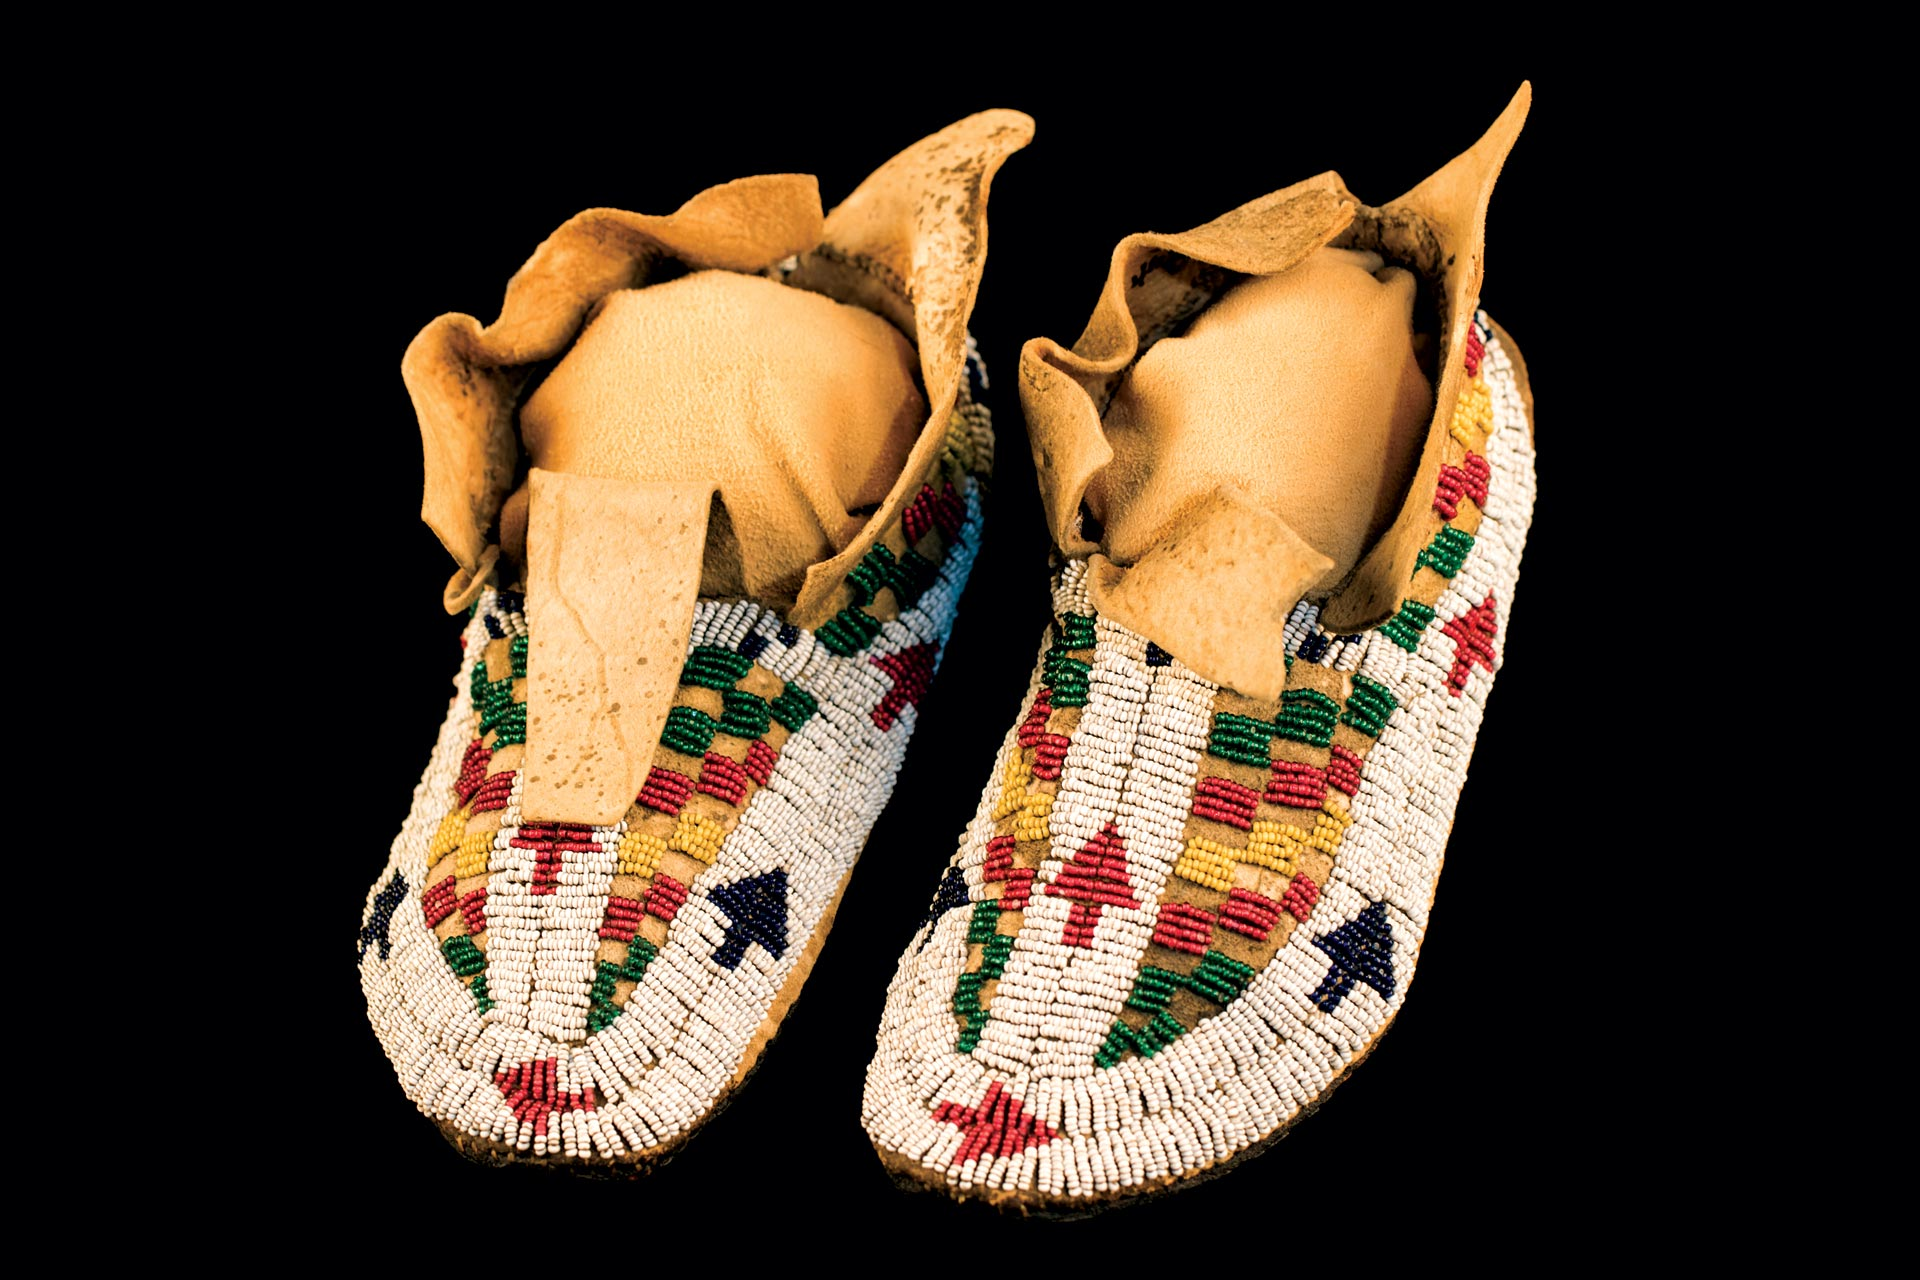 BOY'S MOCCASINS (Northern Cheyenne) of buckskin, rawhide, glass beads, sinew, 1875-80. The small and somewhat irregular white beads on these moccasins help date them.